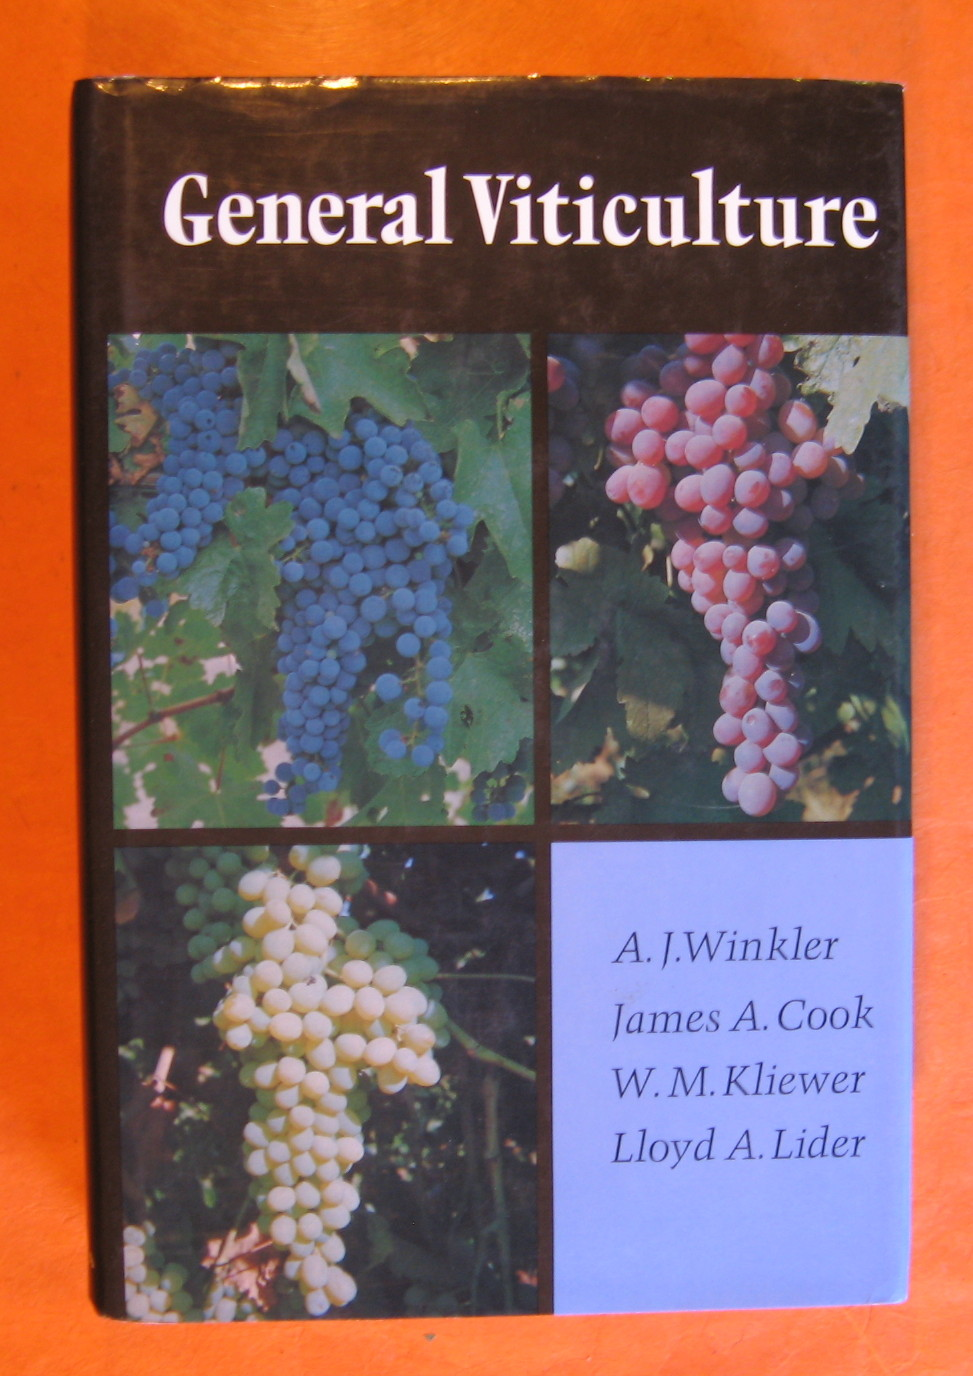 General Viticulture  (Second Edition), Winkler, A. J.;  Cook, James A.;  Kliewer, W. M.;  Lider, Lloyd A.